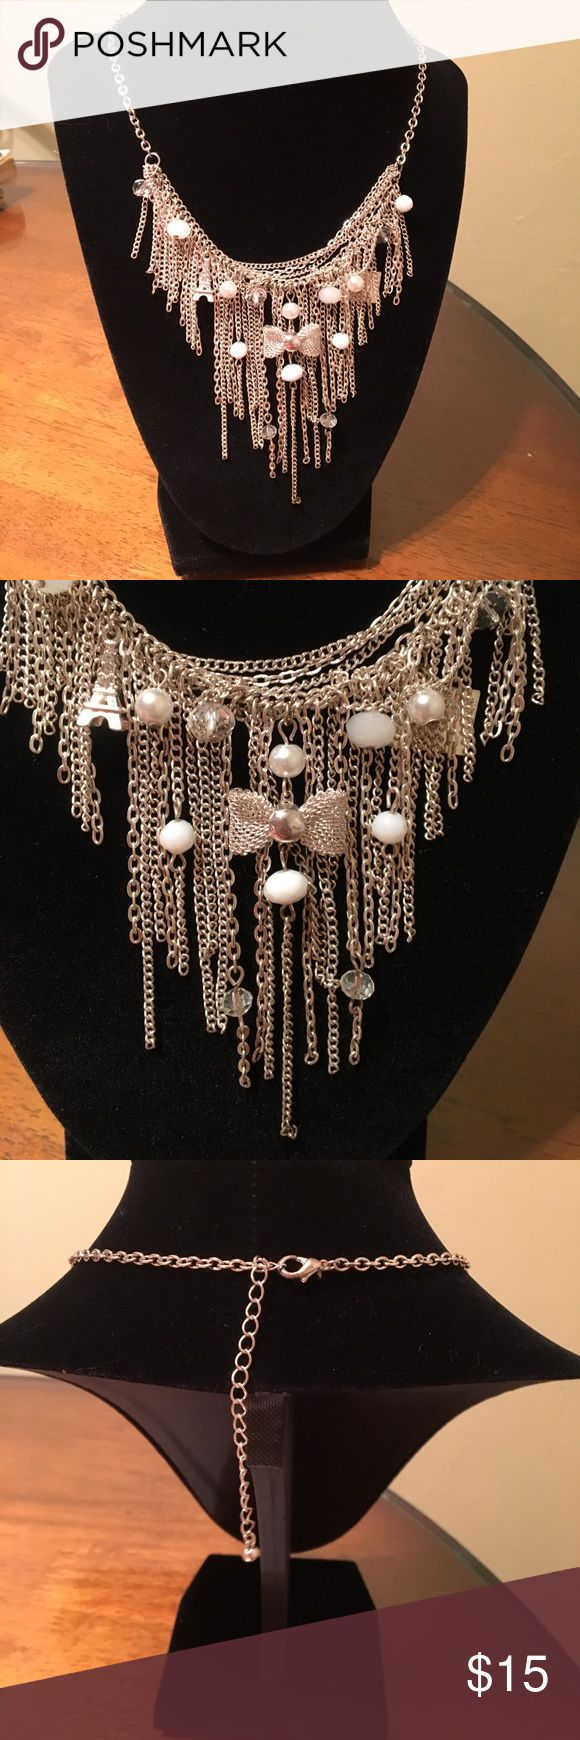 Silver and white statement necklace So pretty! Features silver chains with various charms and pearls dangling. New! Jewelry Necklaces